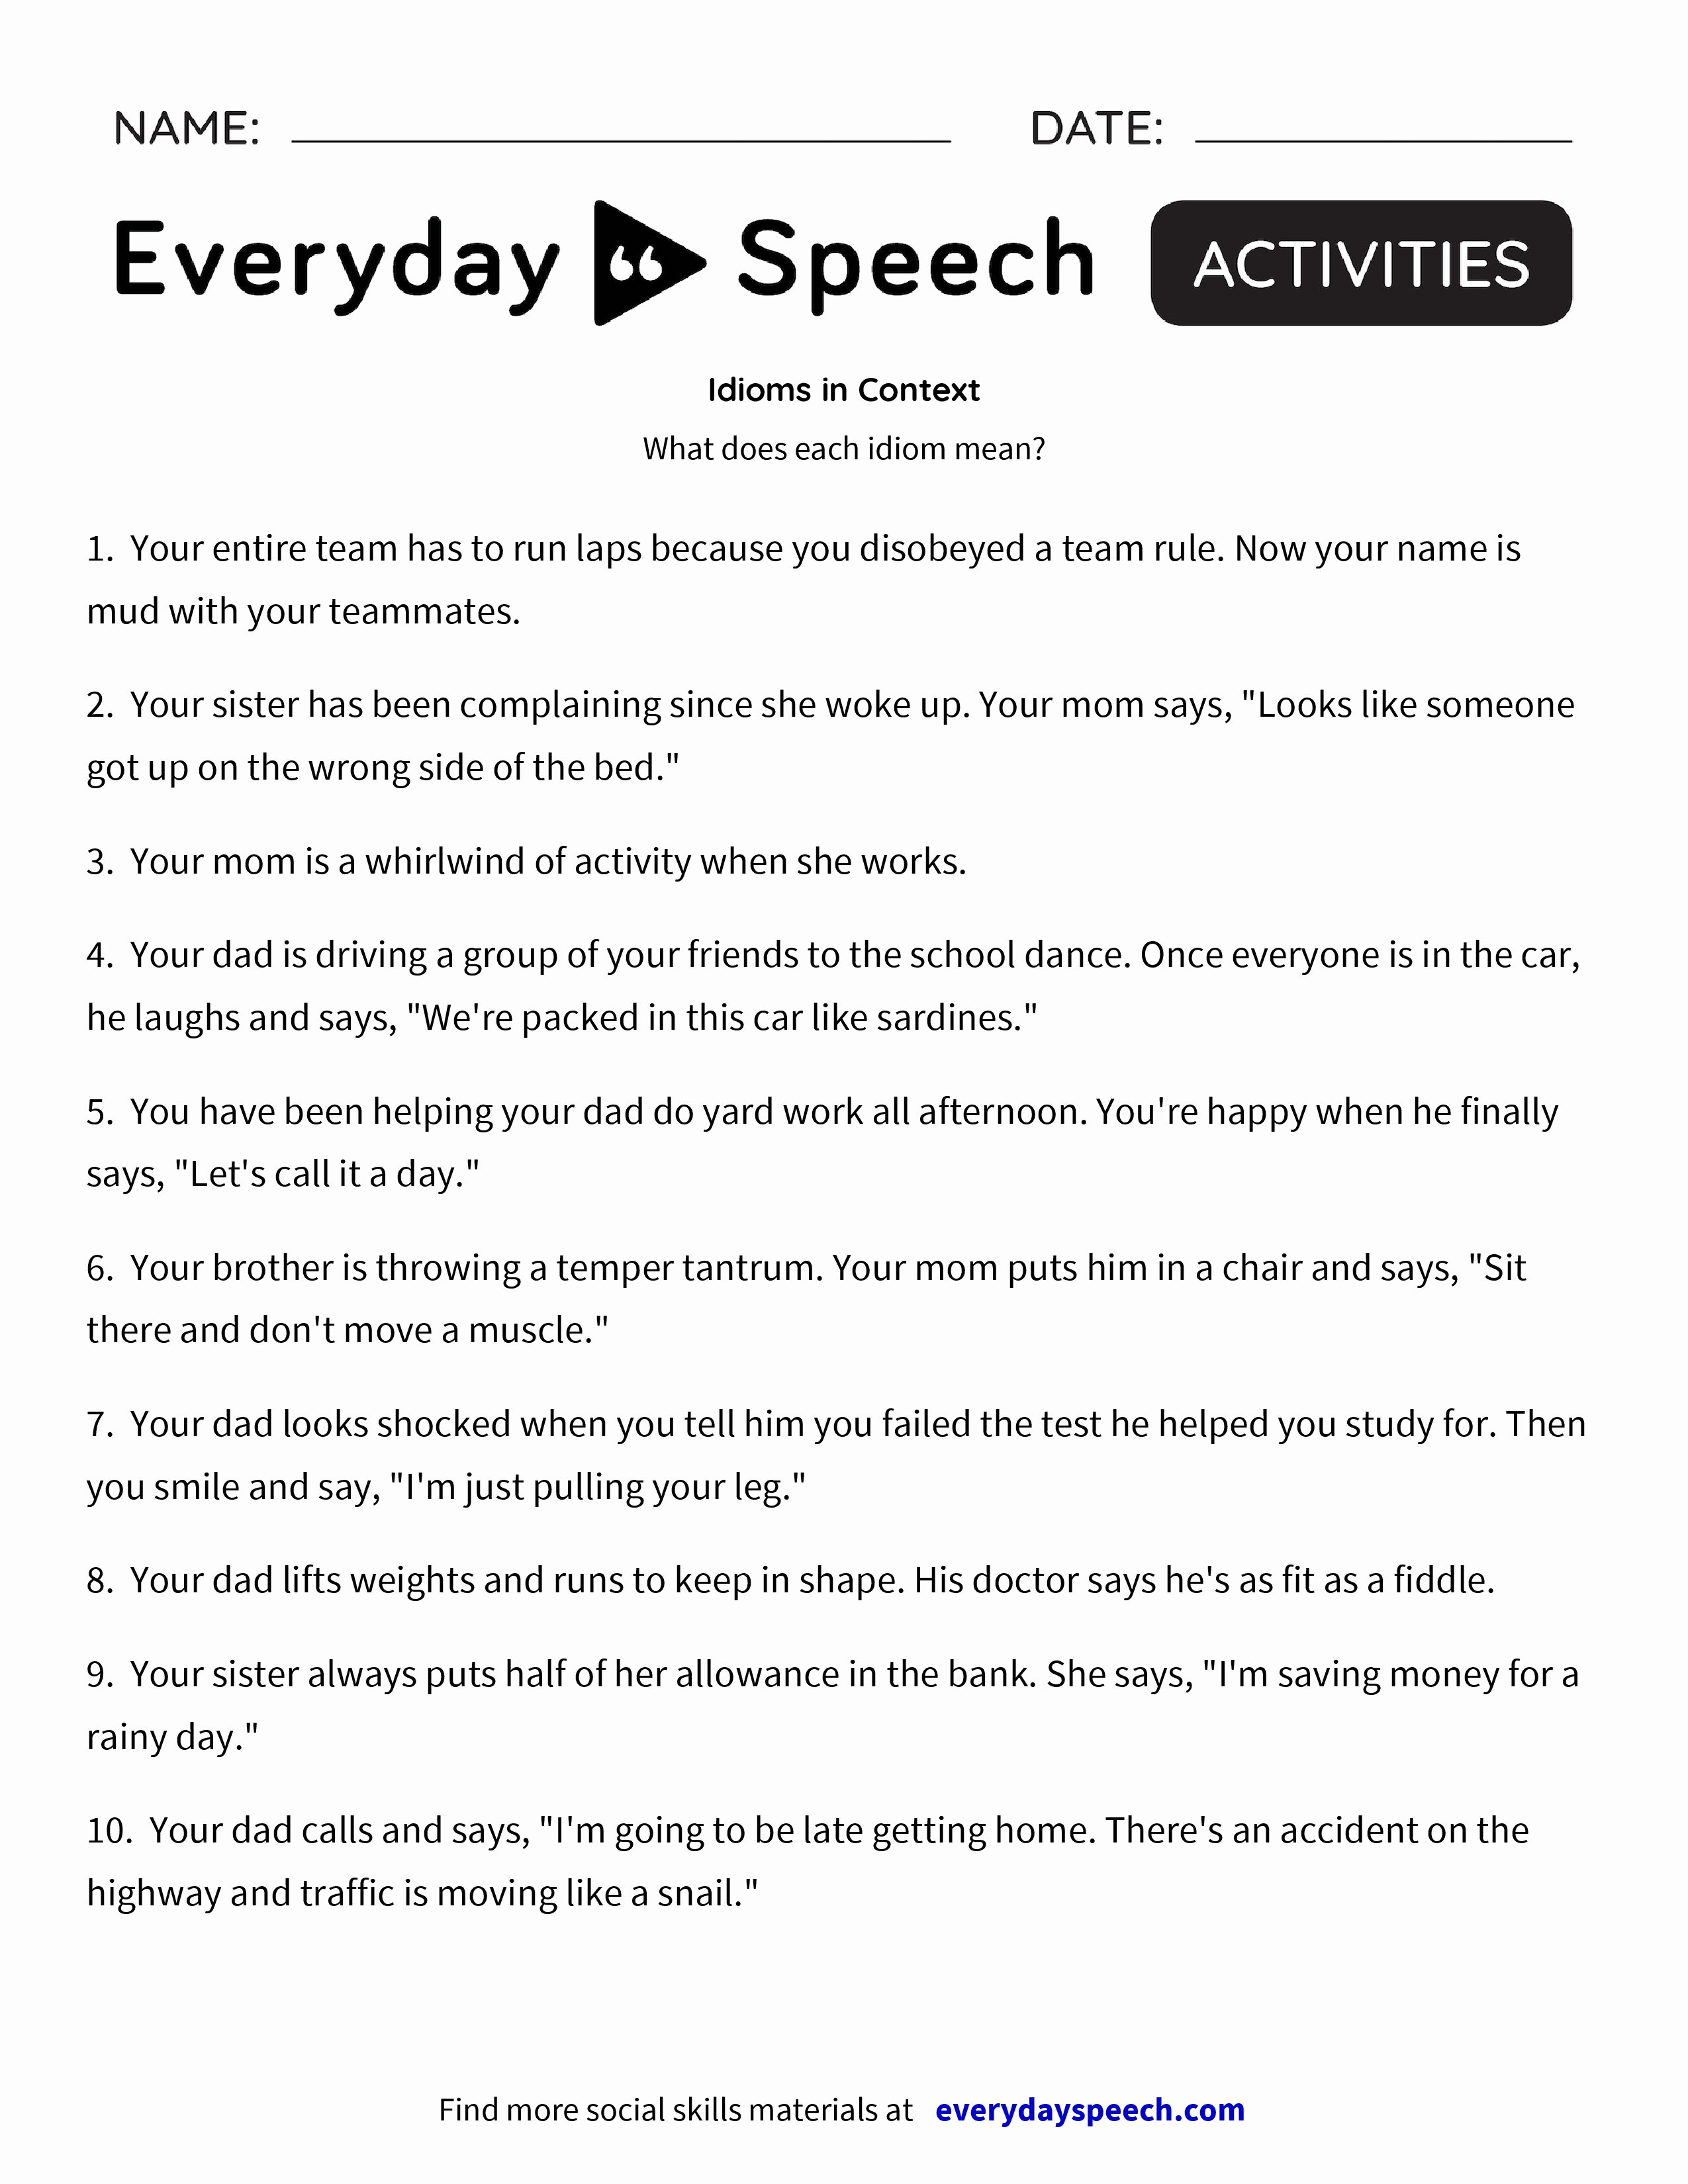 Parts Of Speech Worksheet Pdf Beautiful Idioms In Context Everyday Speech Everyday Speech